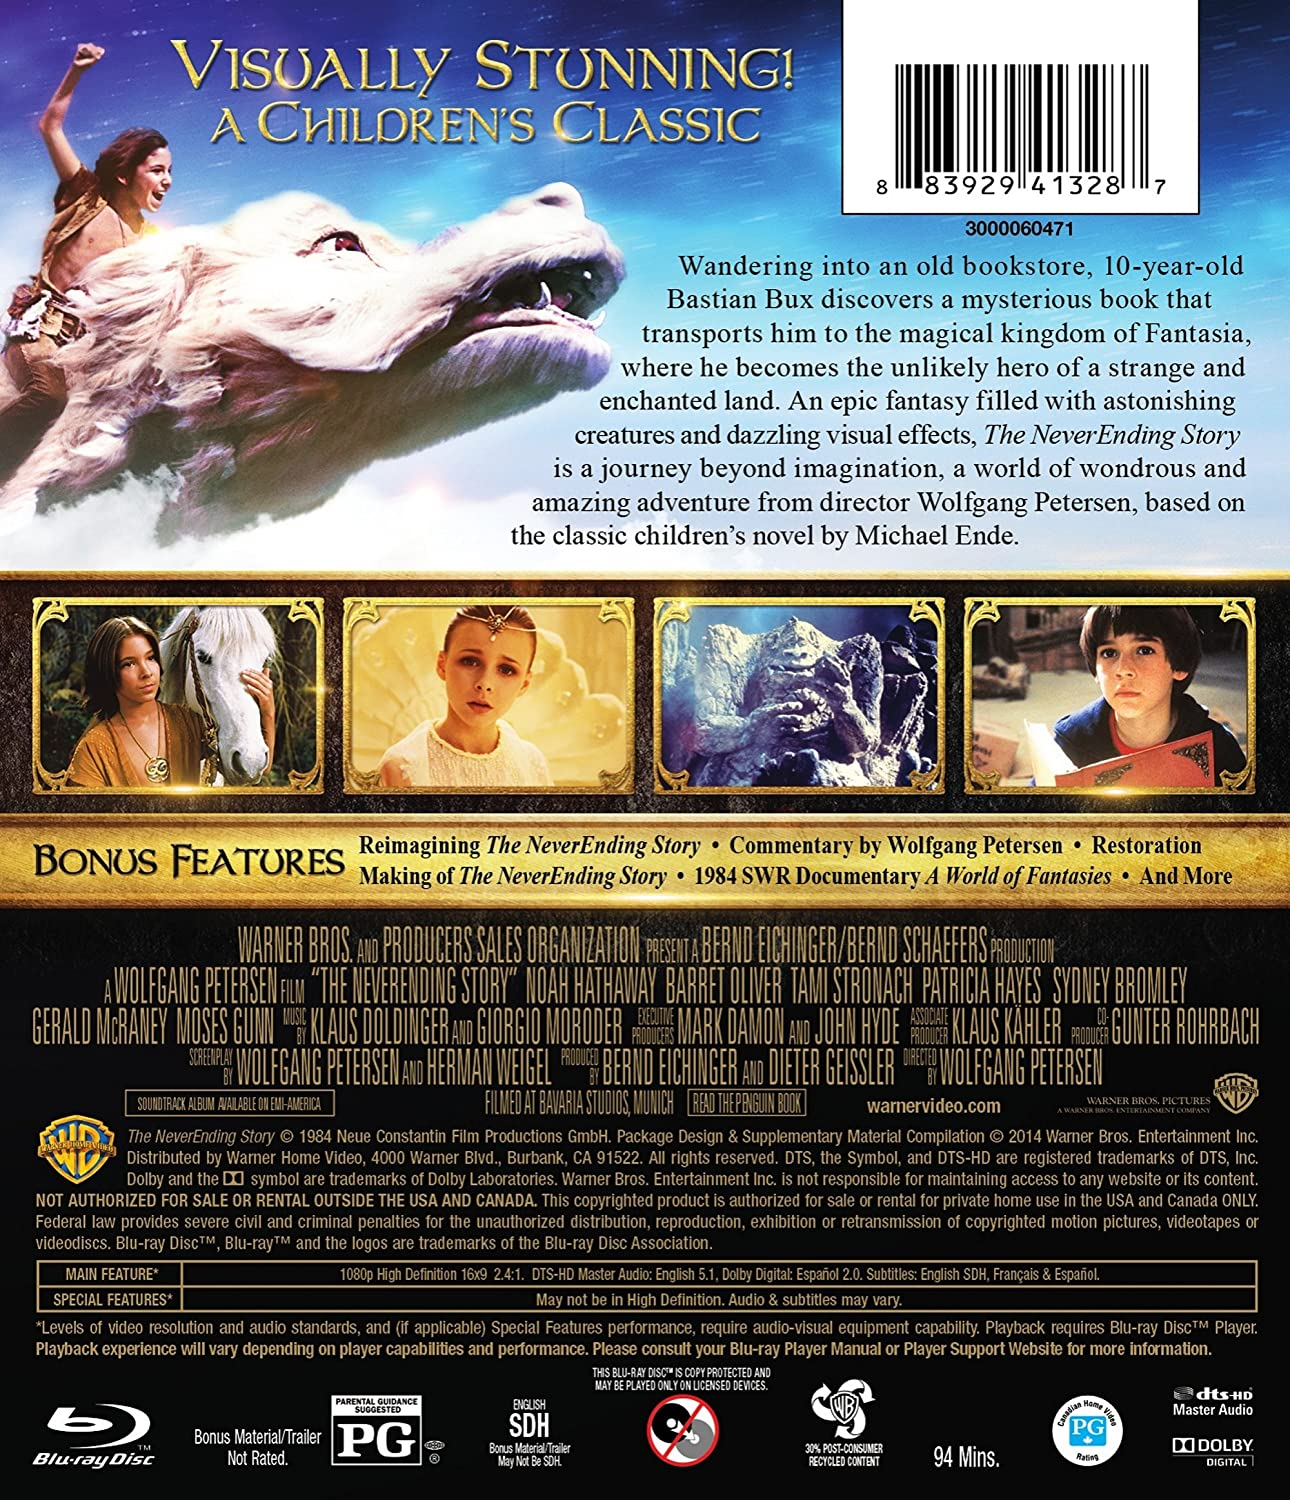 Amazon.com: The Neverending Story (30th Anniversary Edition) [Blu ...